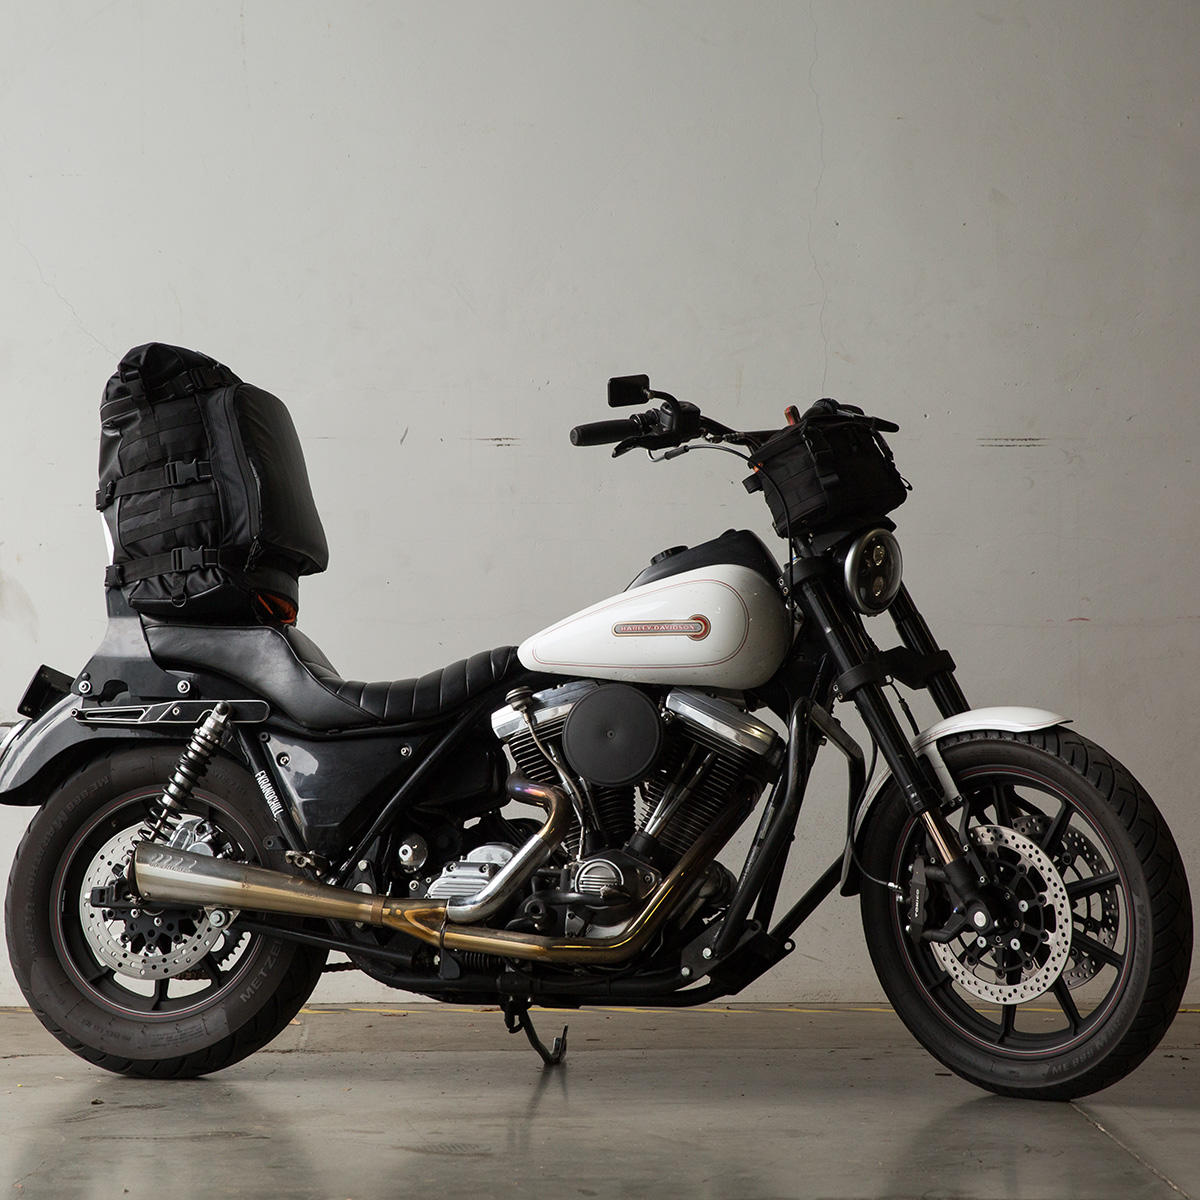 The EXFIL-80 Sissy Bar Bag